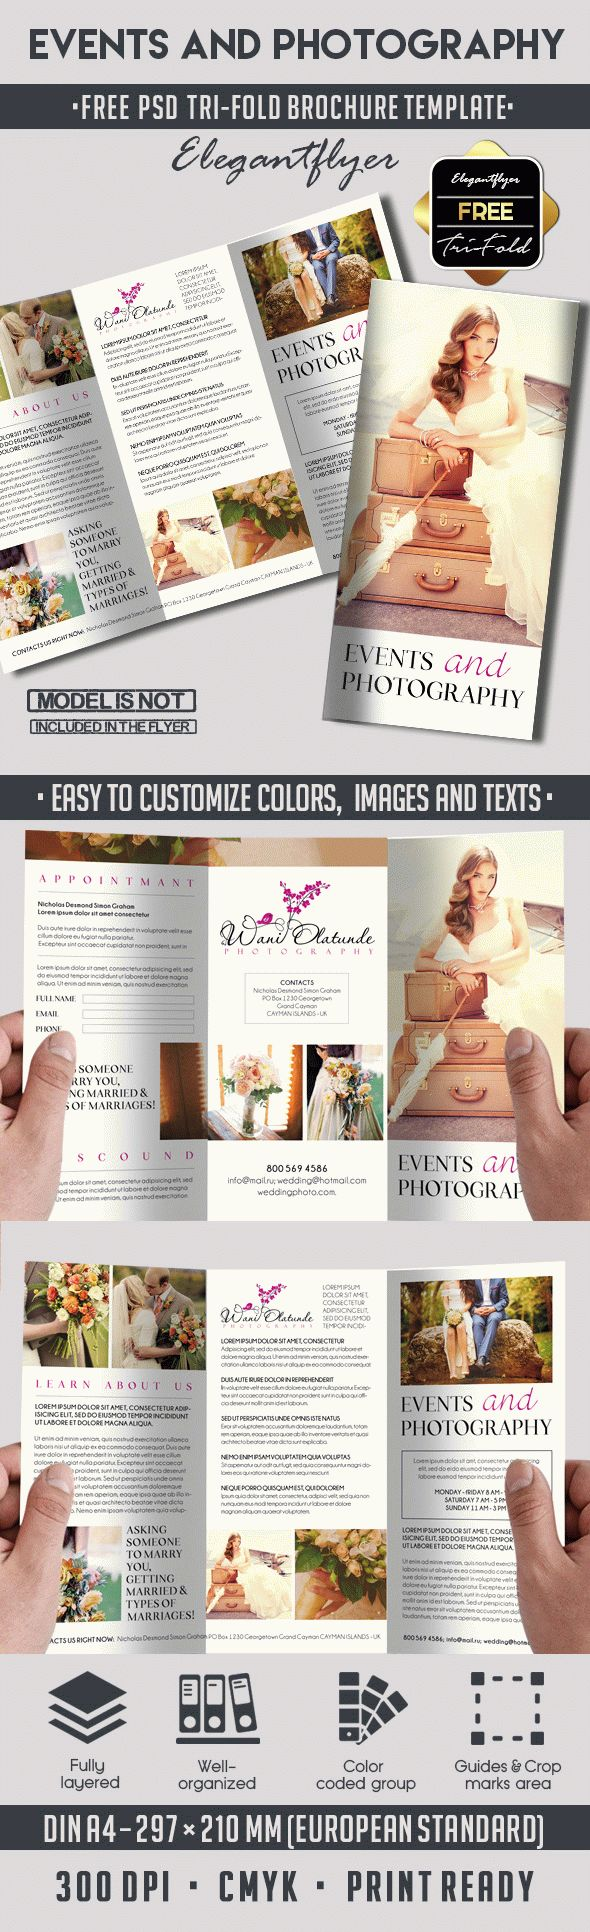 Free Design Brochure for Photography